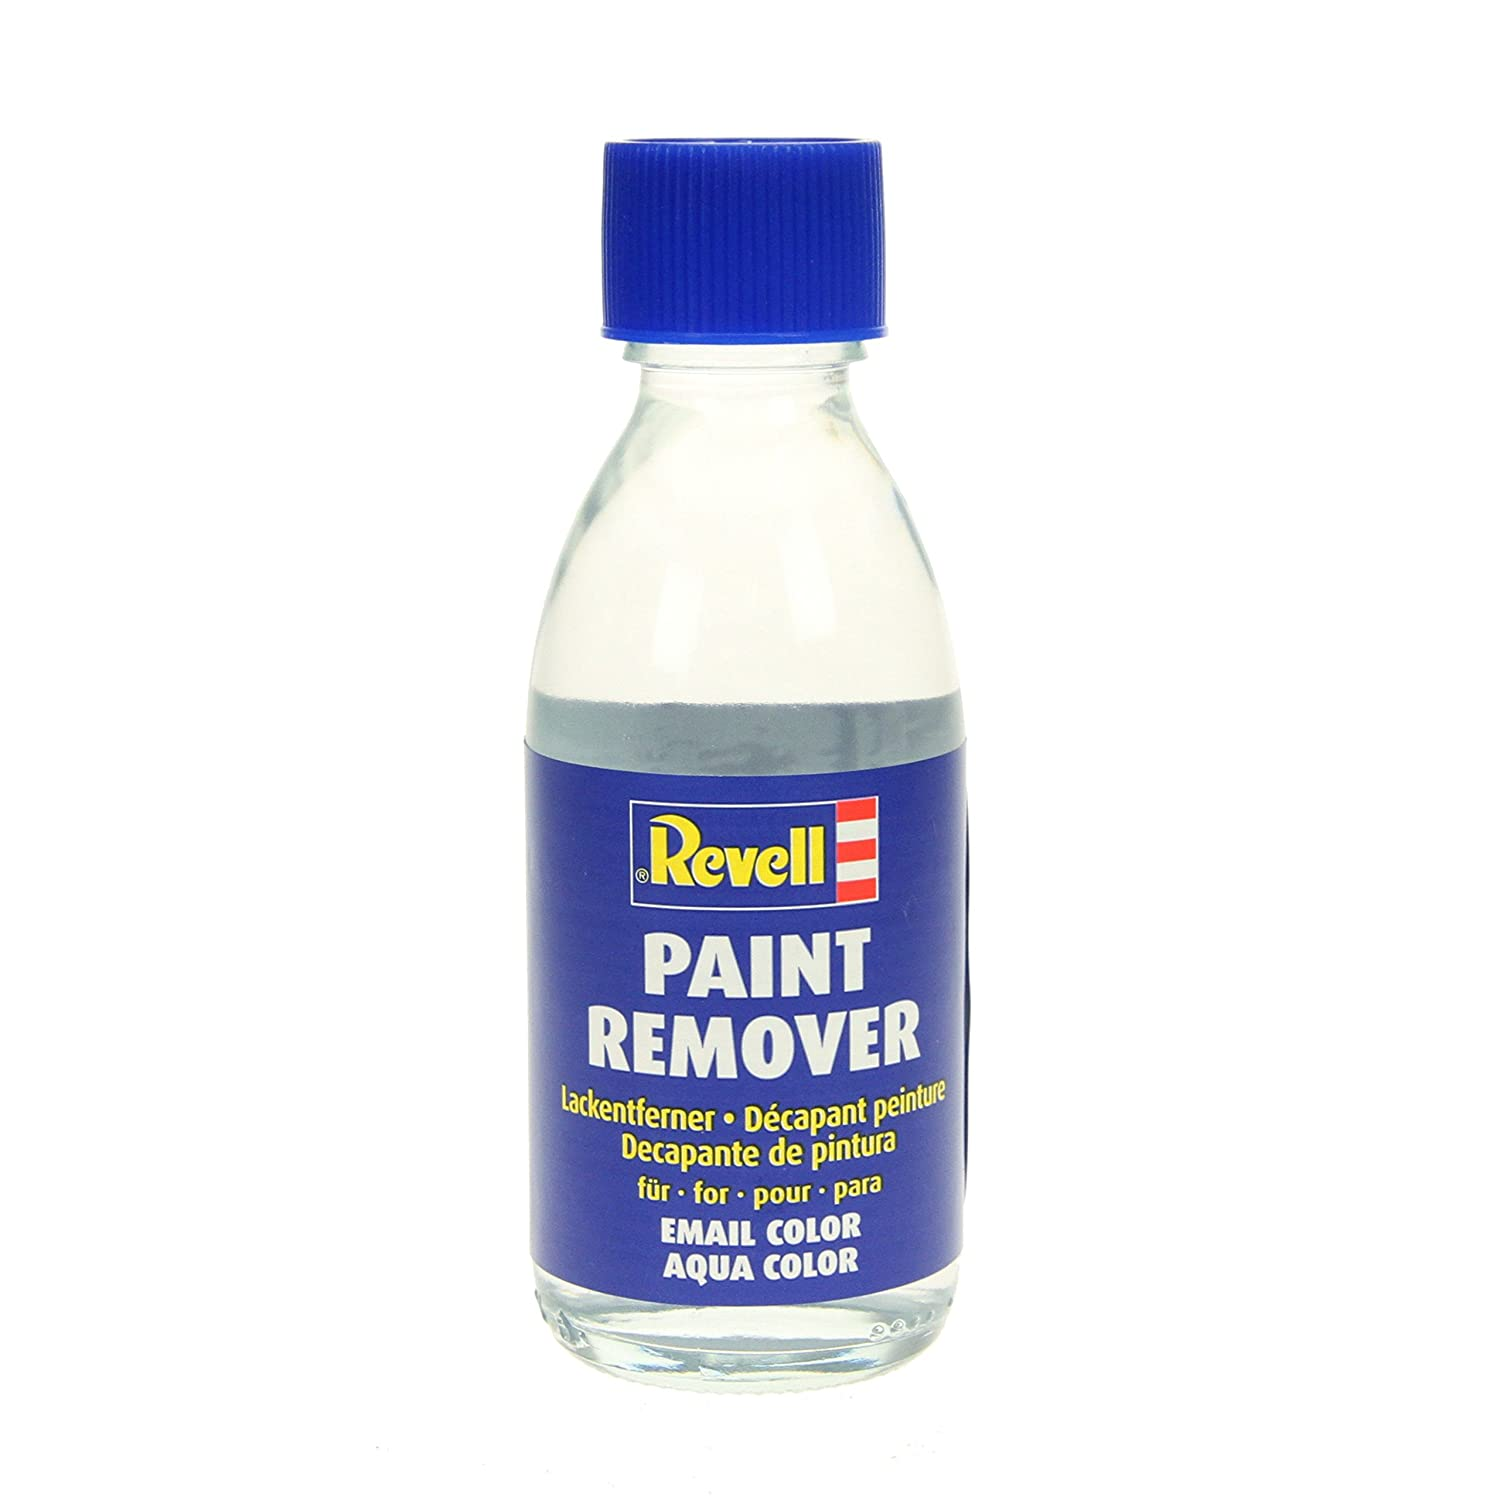 Model Paint Remover Amazon UK